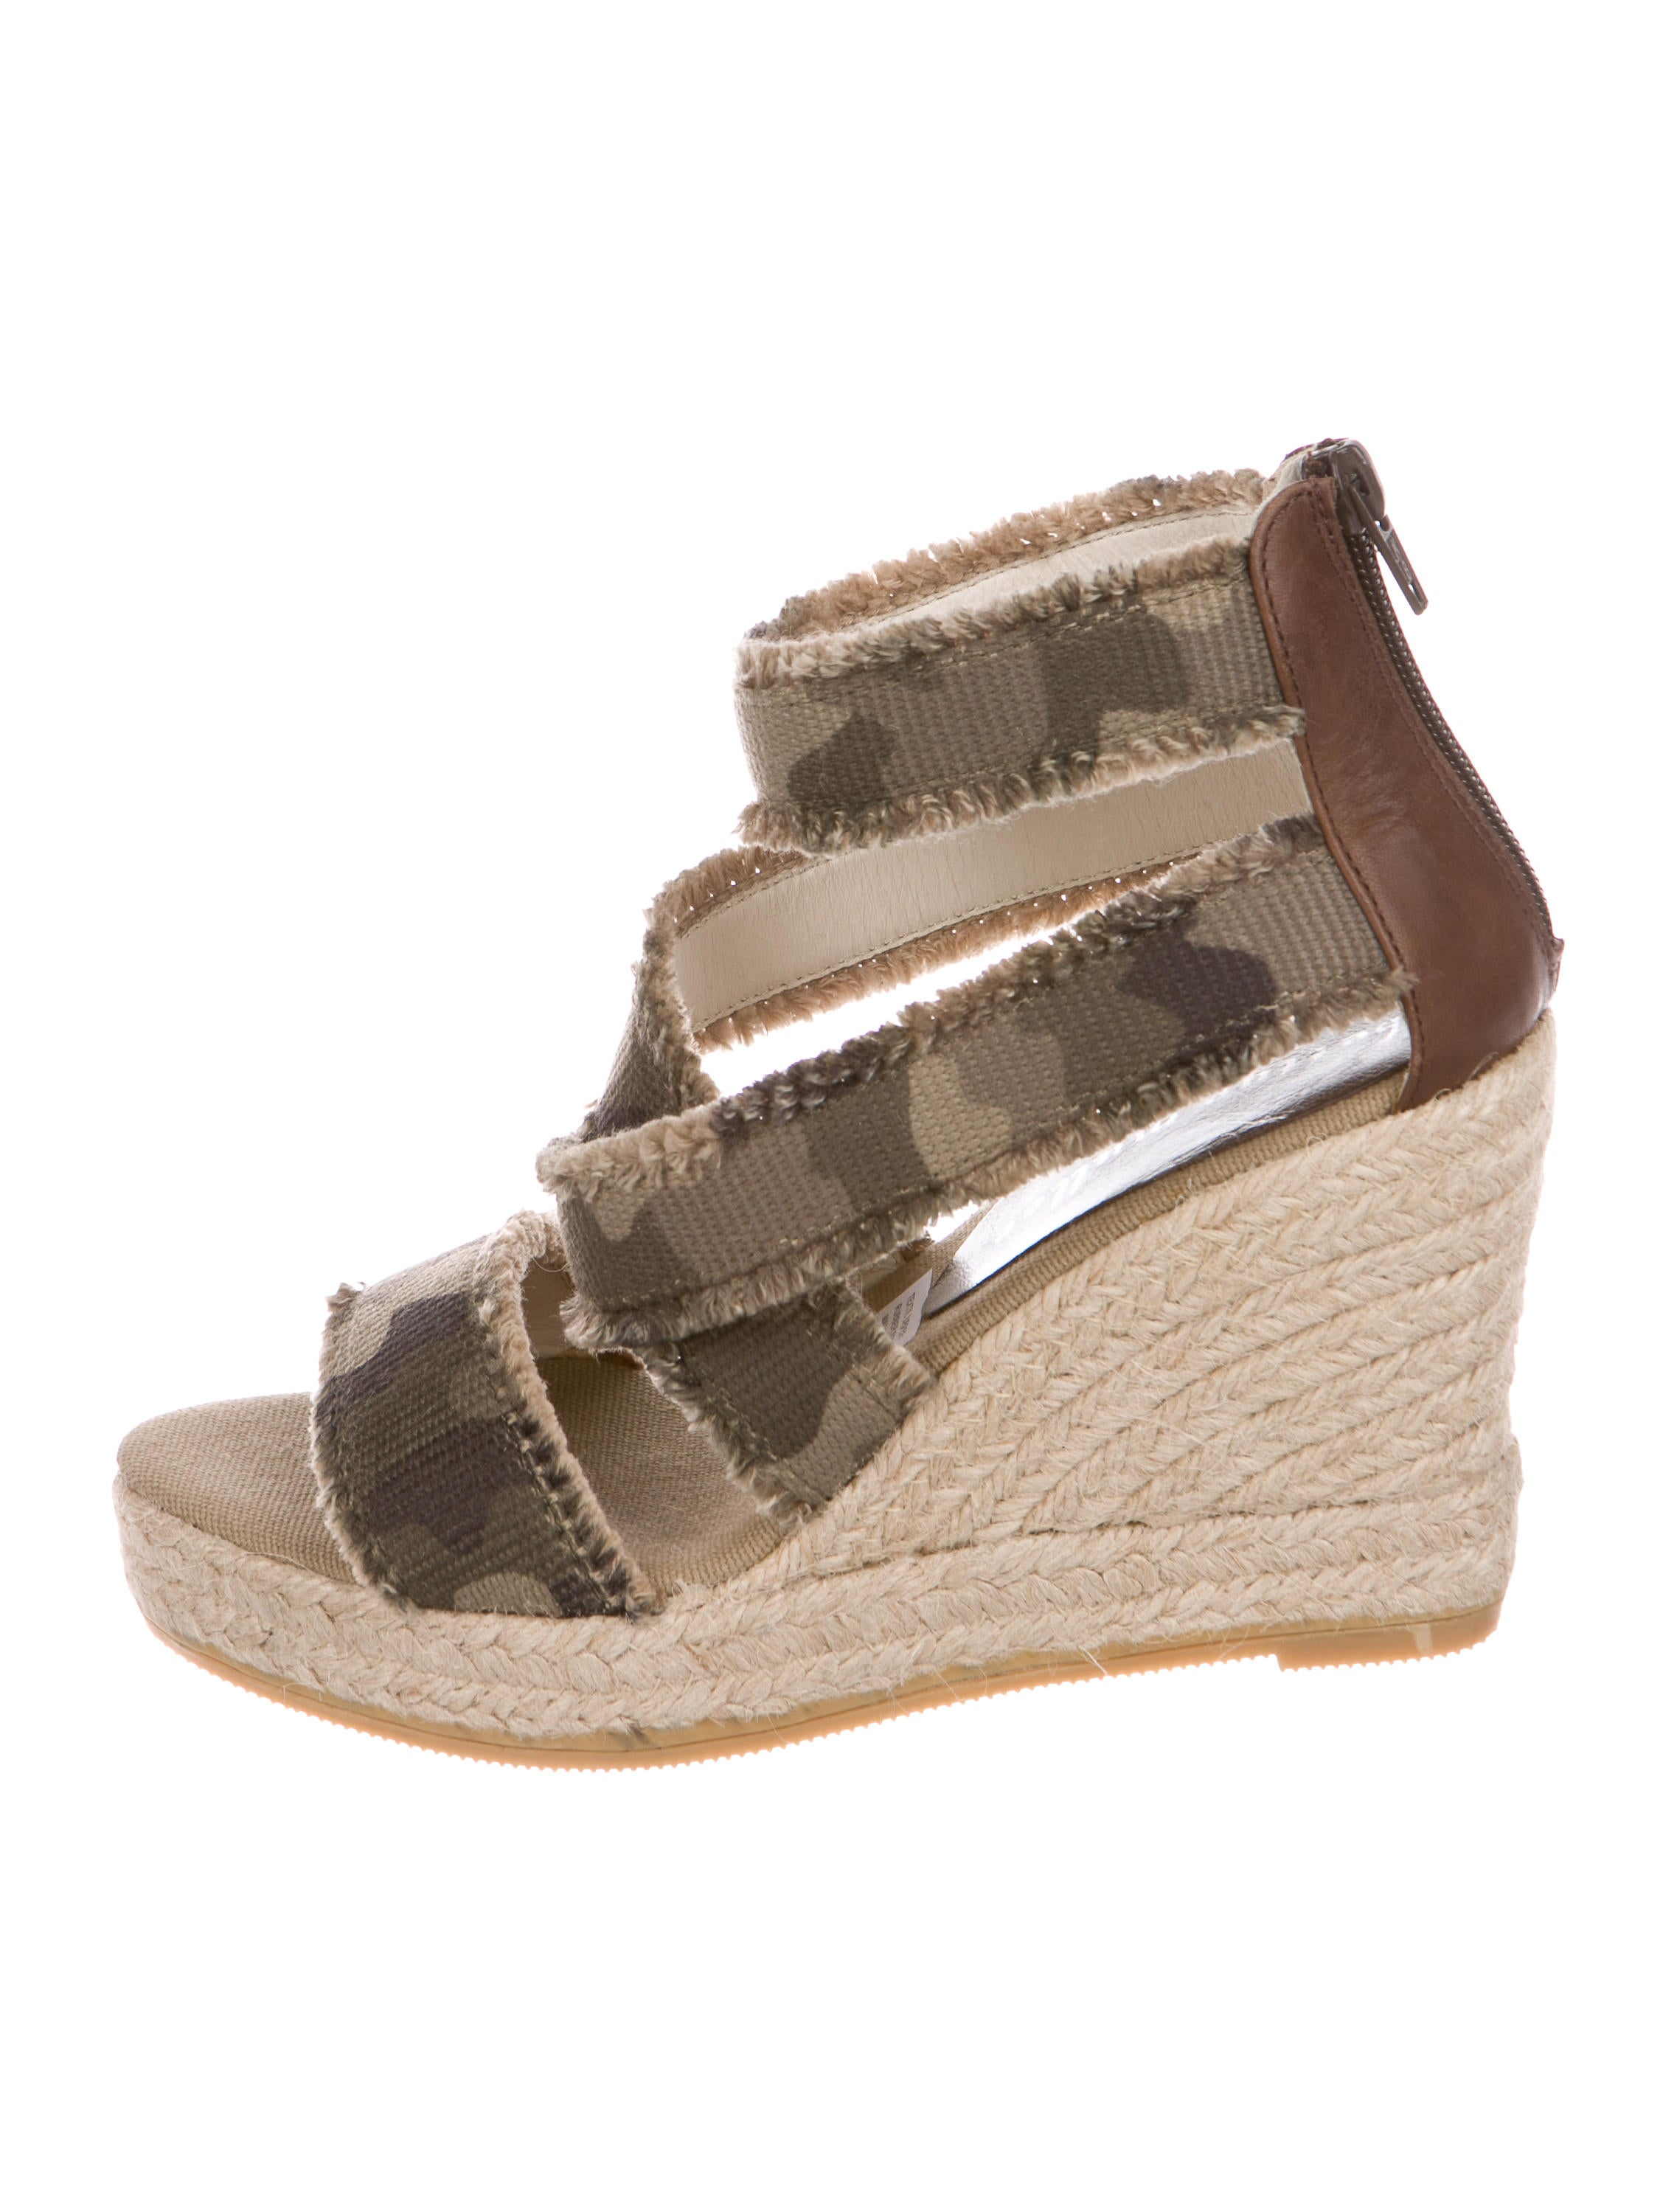 5263f7f8710 Woven Espadrille Wedges